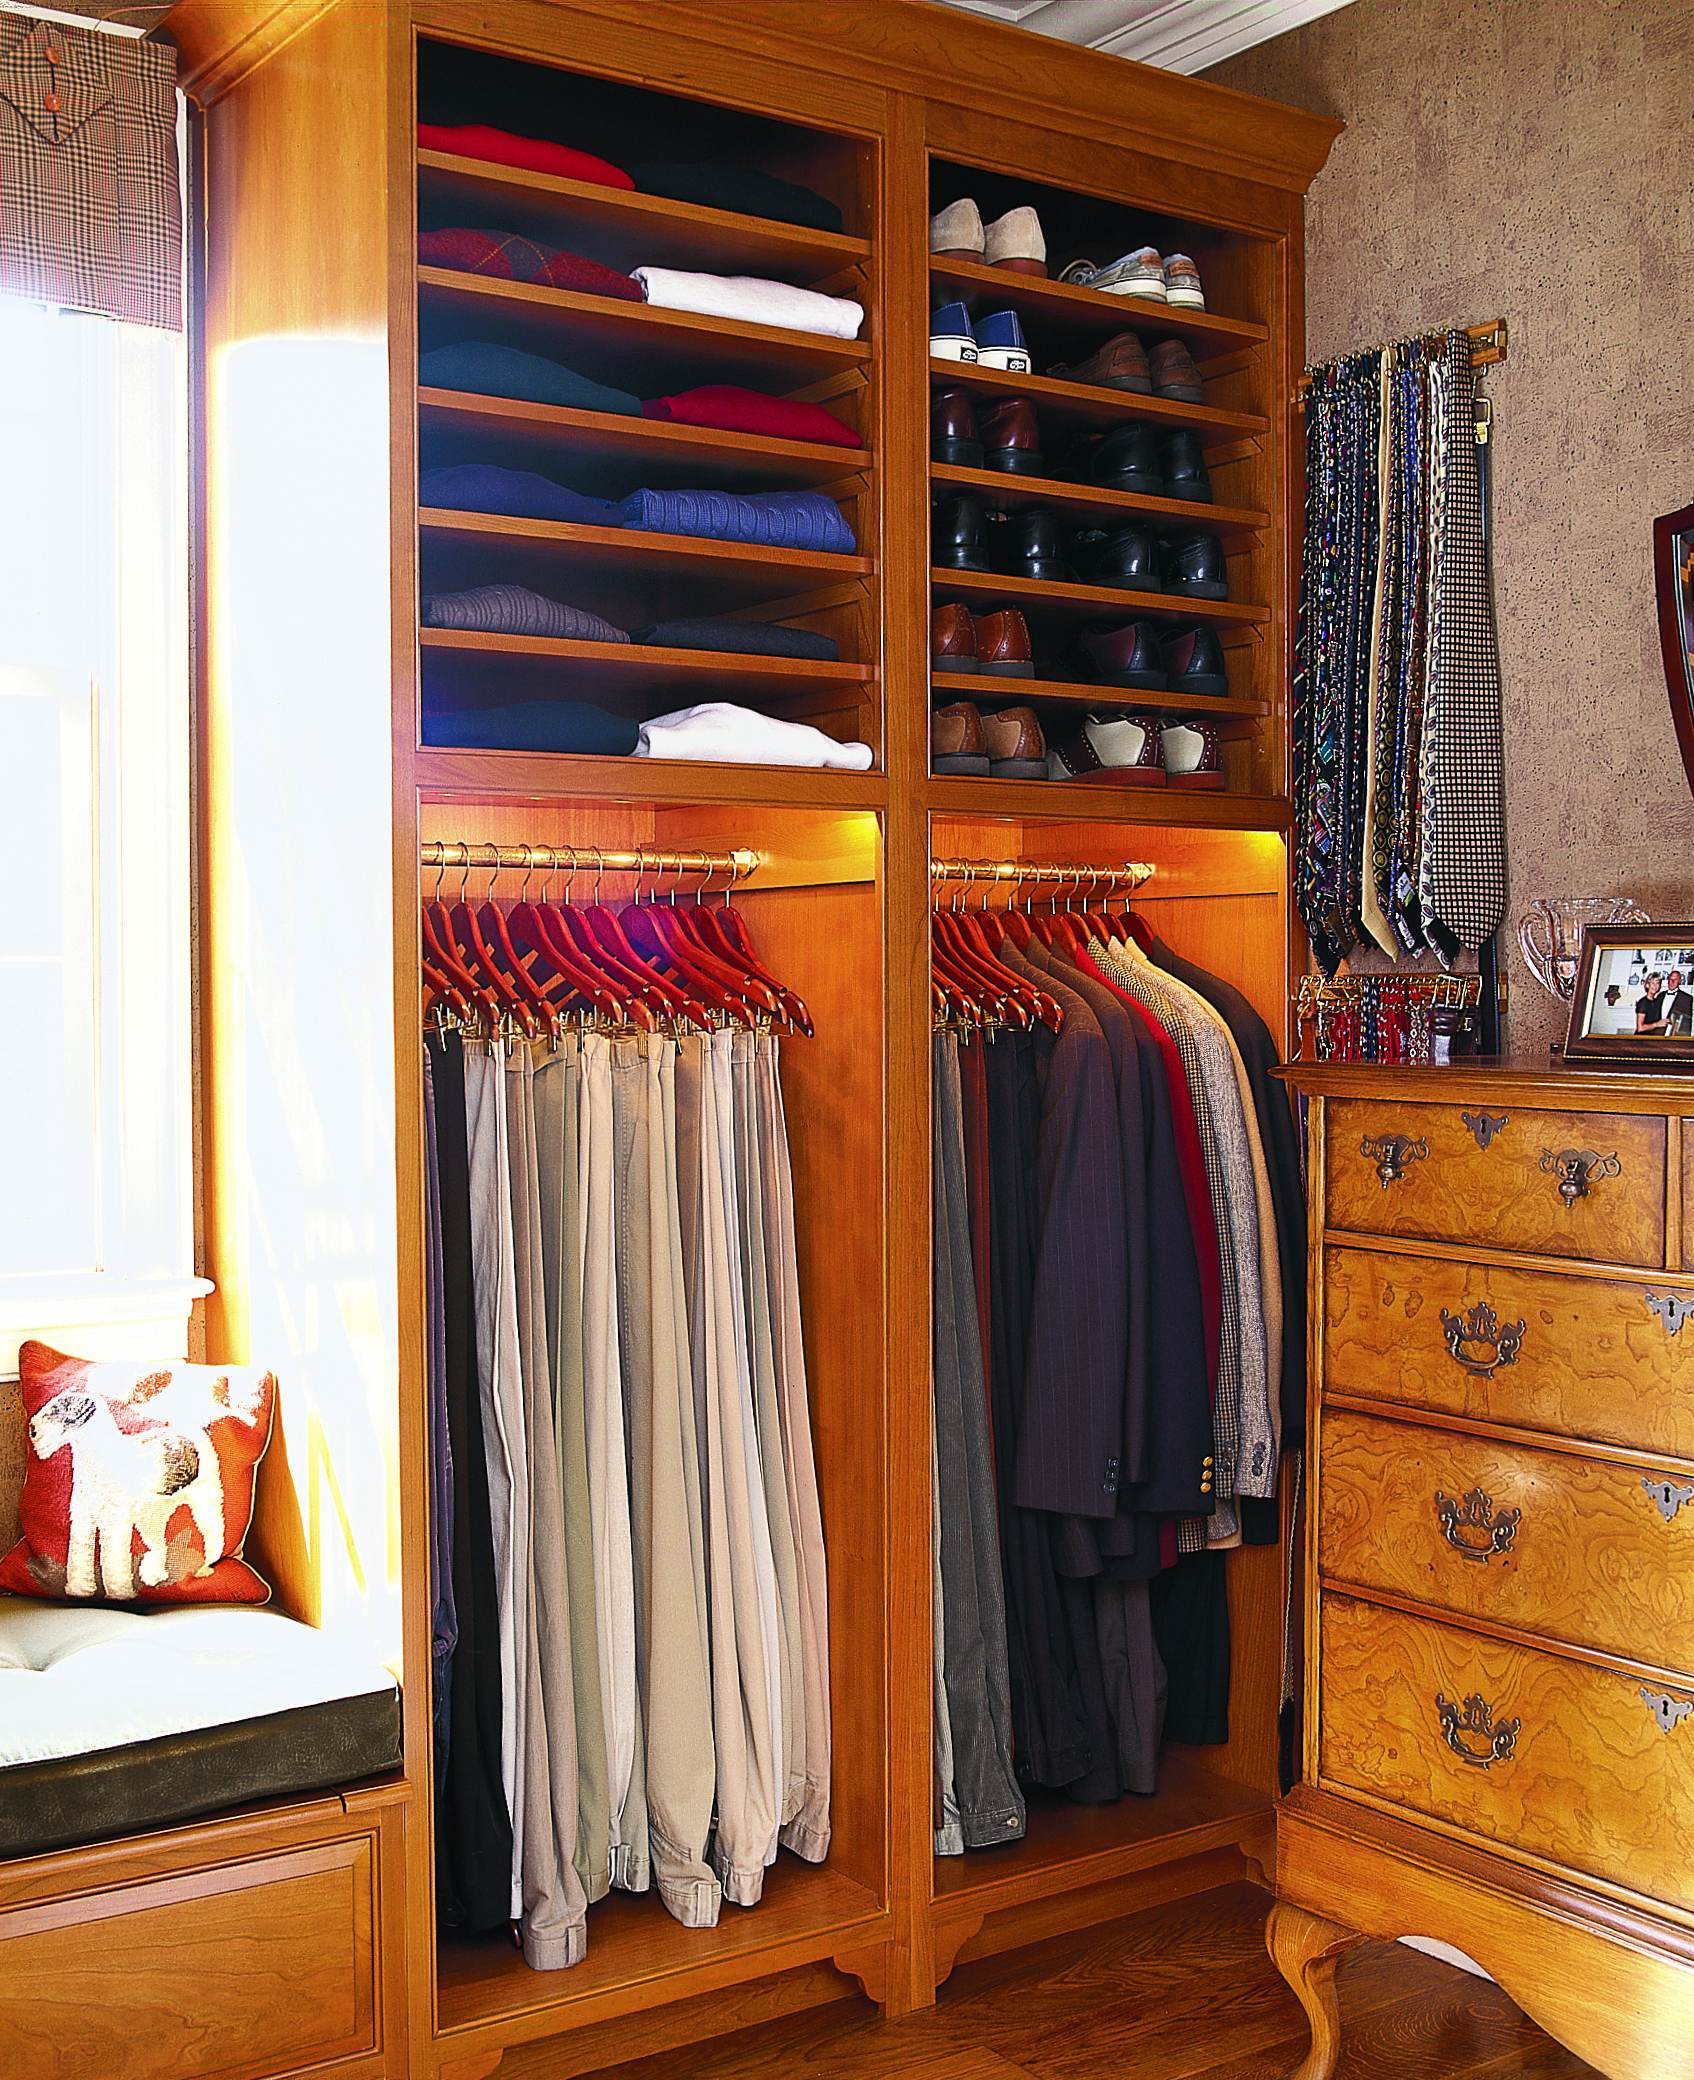 A closet design that has two hanging sections and then shelves above it for shoes and folded clothes.